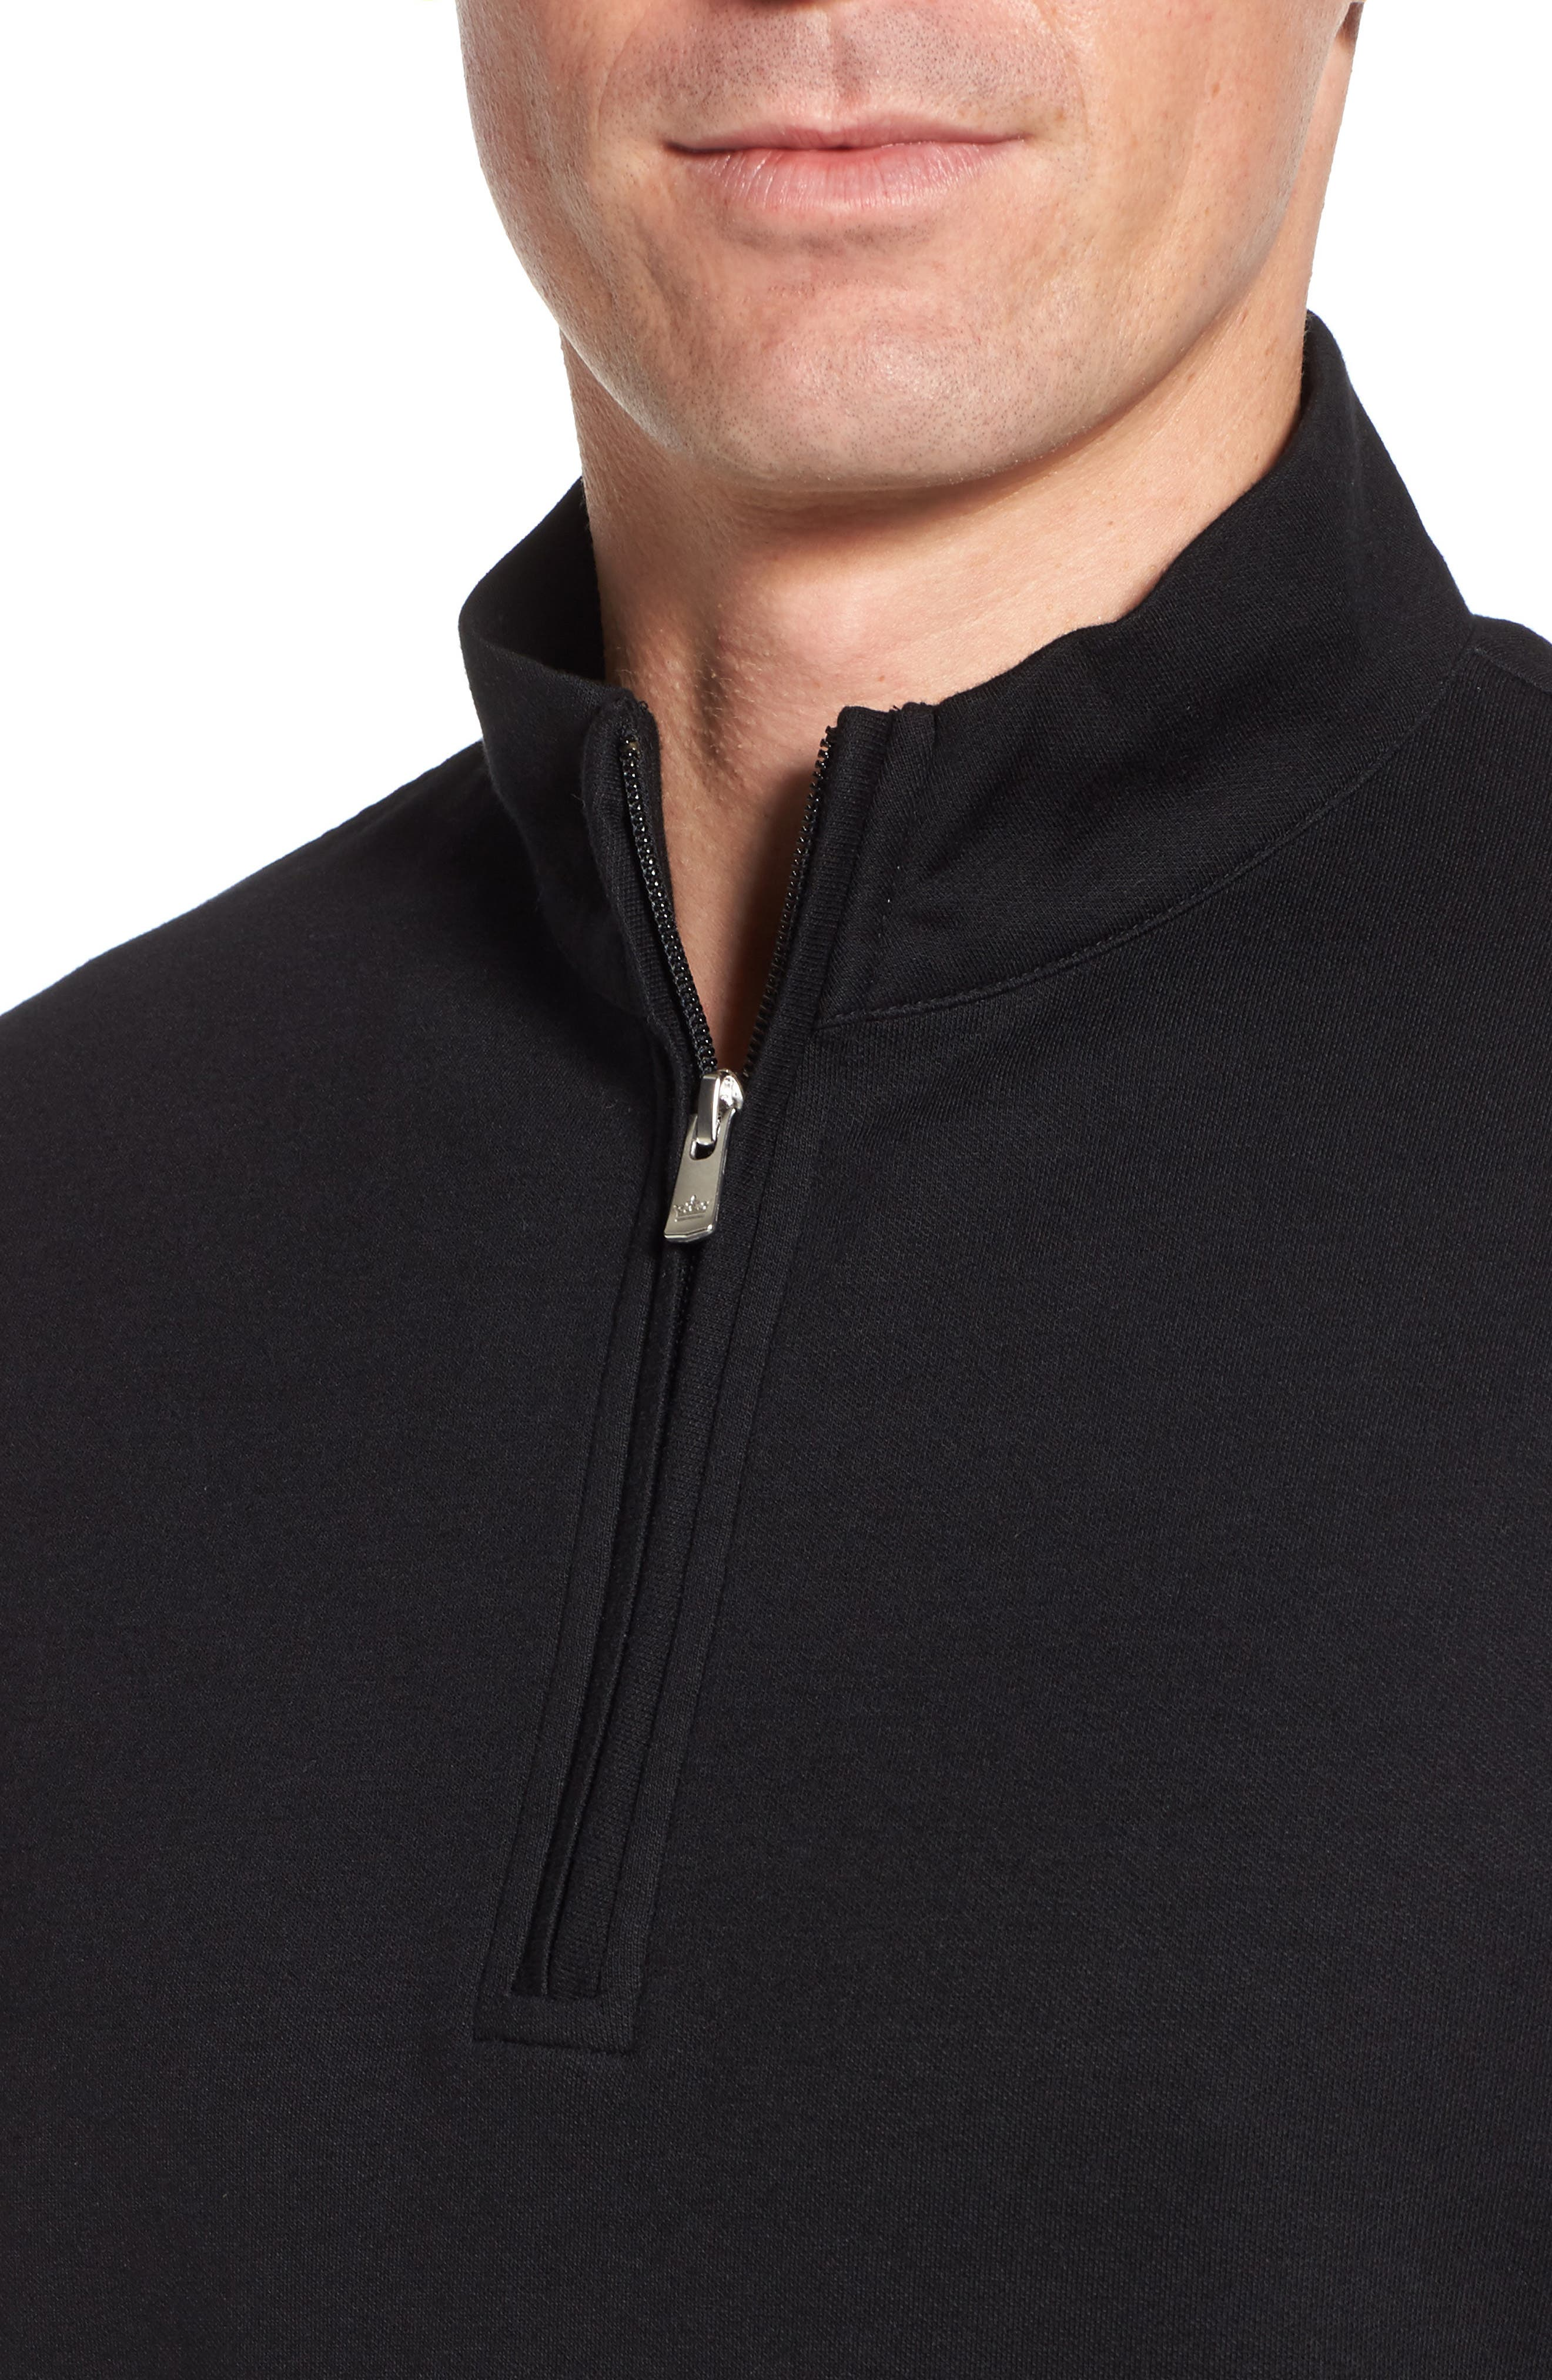 Crown Comfort Jersey Quarter Zip Pullover,                             Alternate thumbnail 4, color,                             001